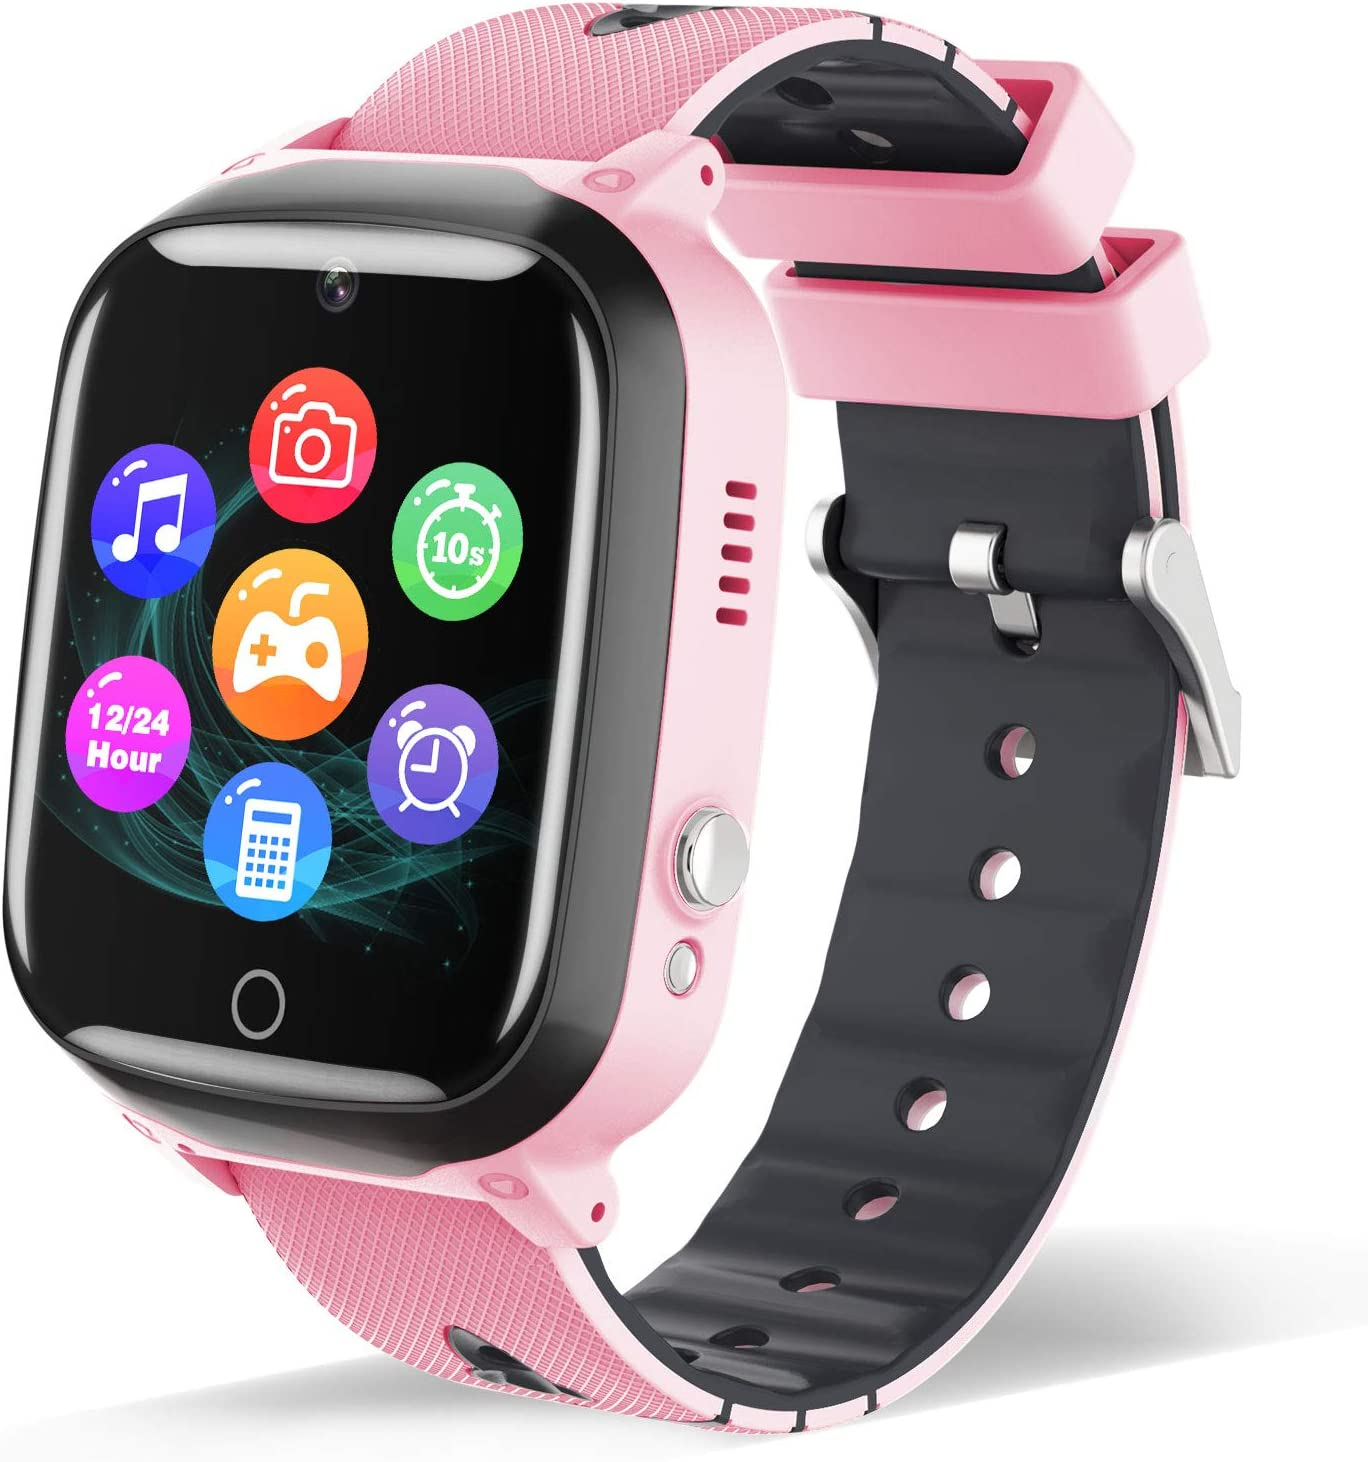 Smart Watch for Kids - Children Smartwatch Boys Girls with 2 Way Phone Calls 7 Intelligent Games Music MP3 Player Camera Calculator Alarm Timer 12/24 Hours for 4-12 Years Old Students (Pink)